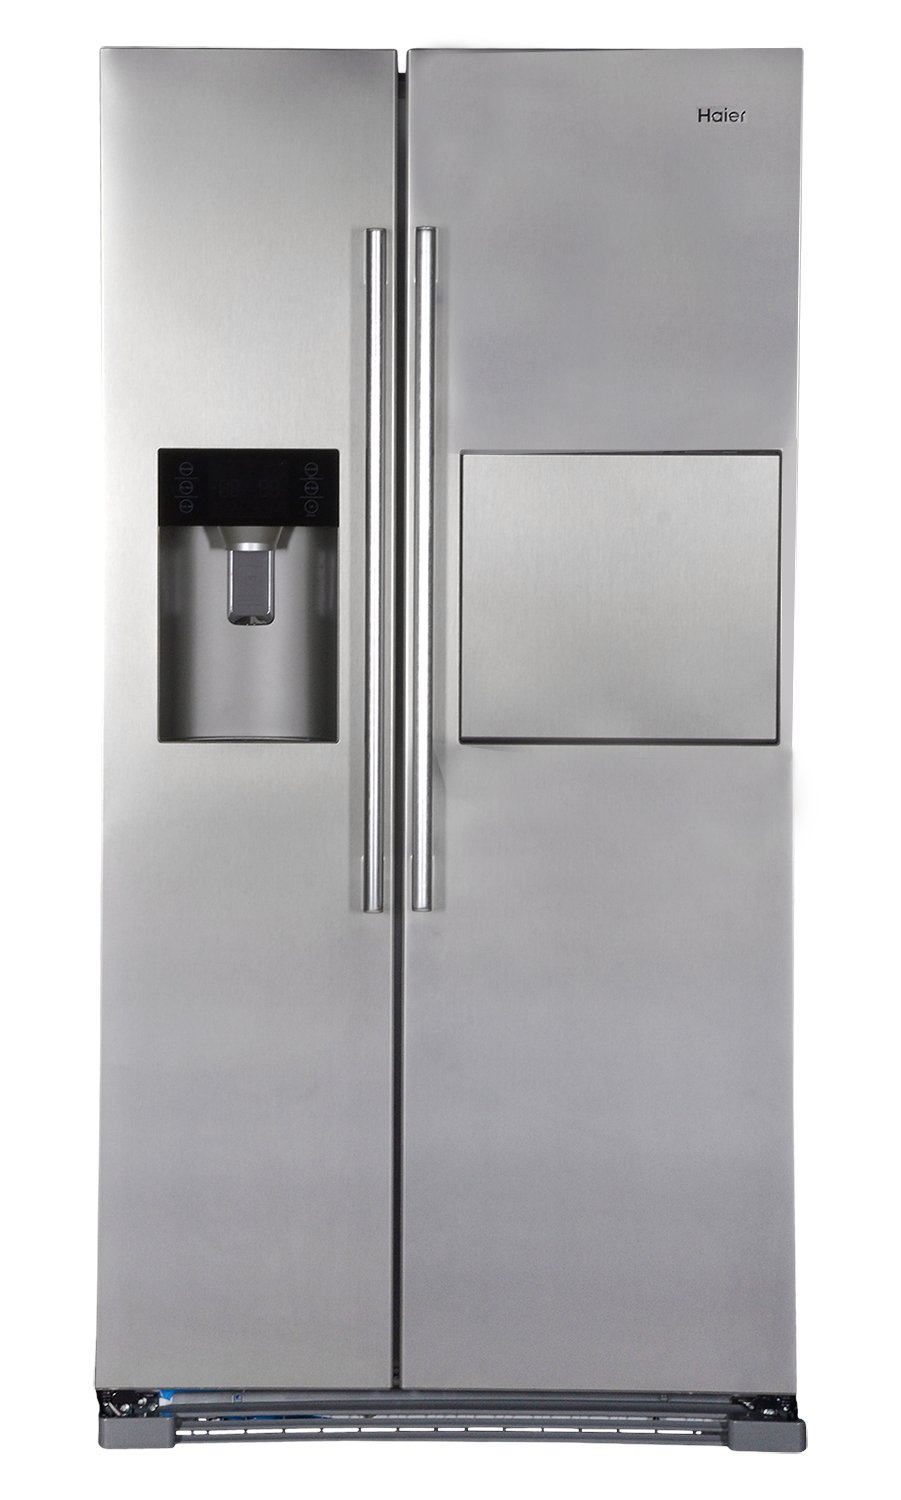 Haier Hrf 628af6 Frost Free Side By Side Refrigerator 628 Ltrs